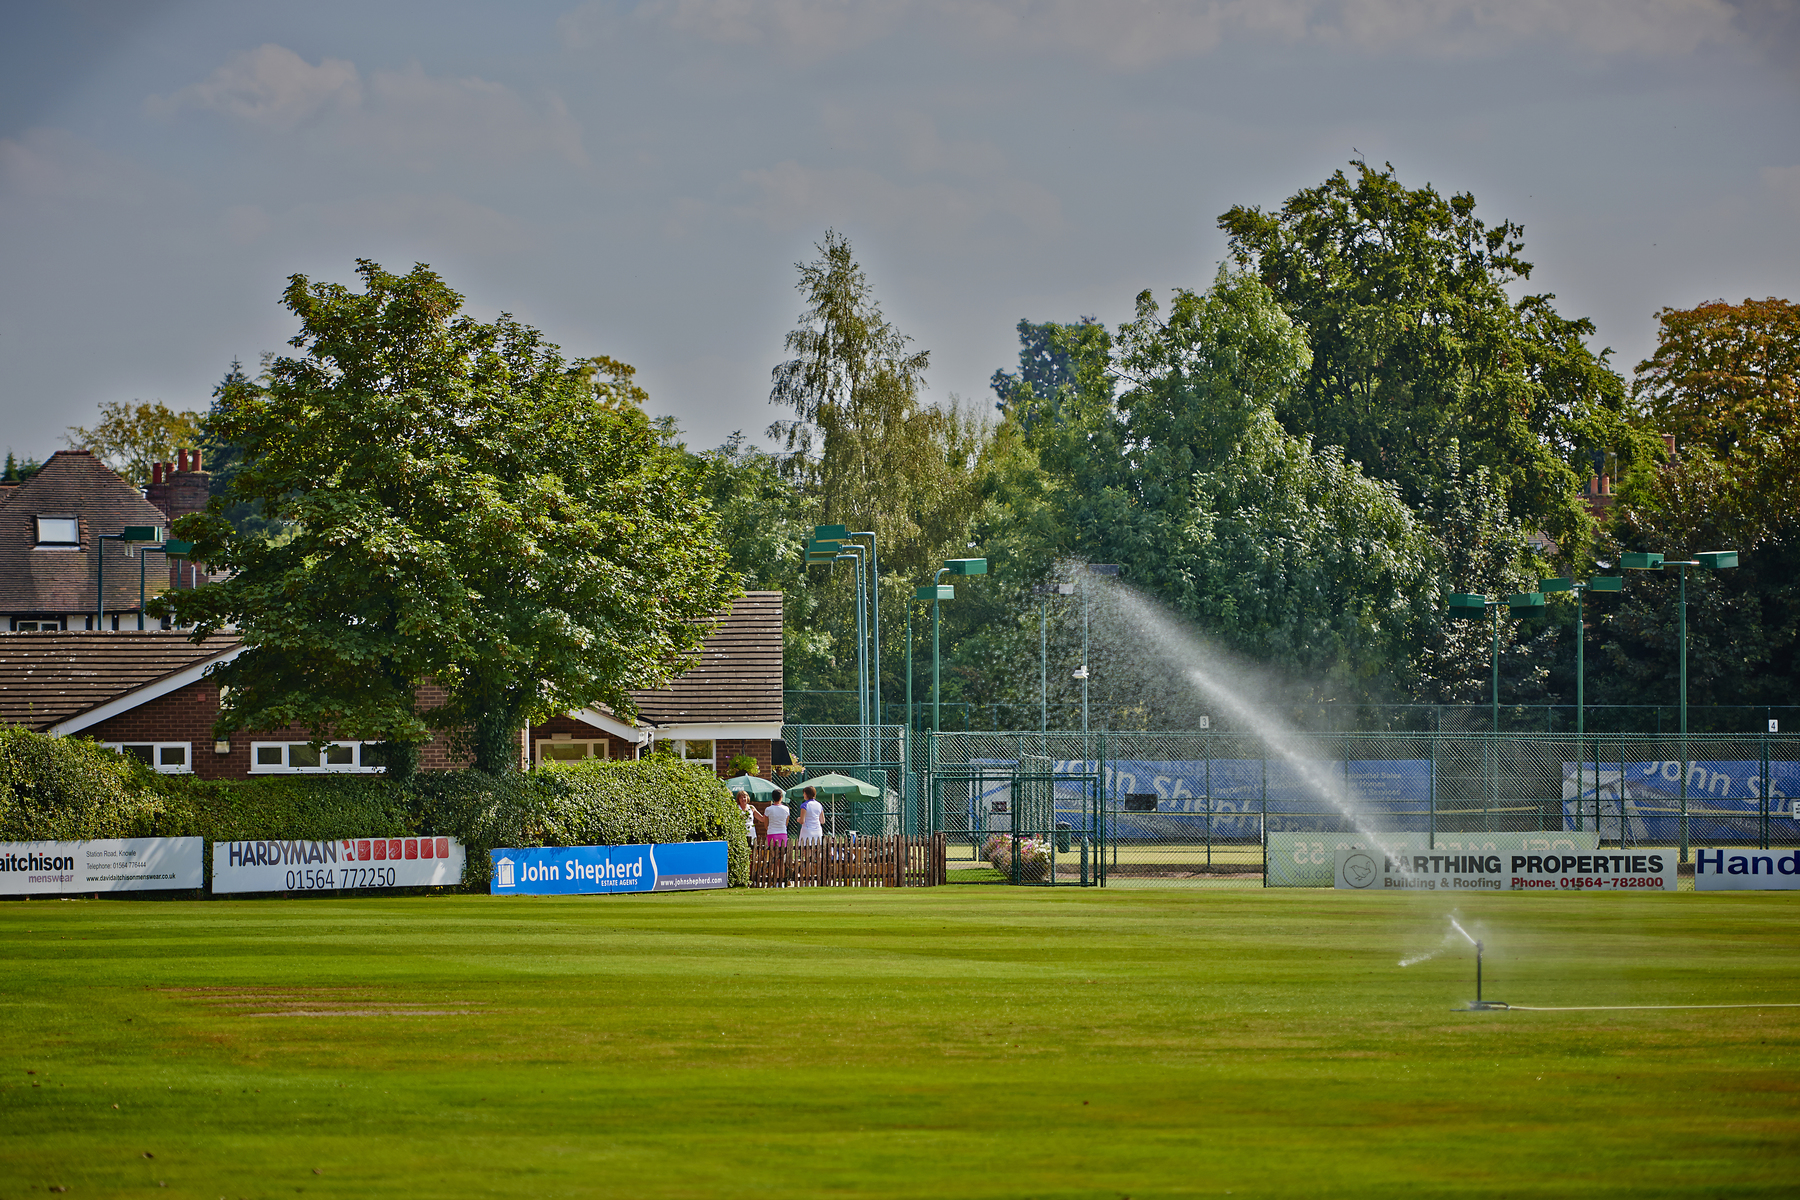 twm_knowle_cricket_and_tennis_club_17